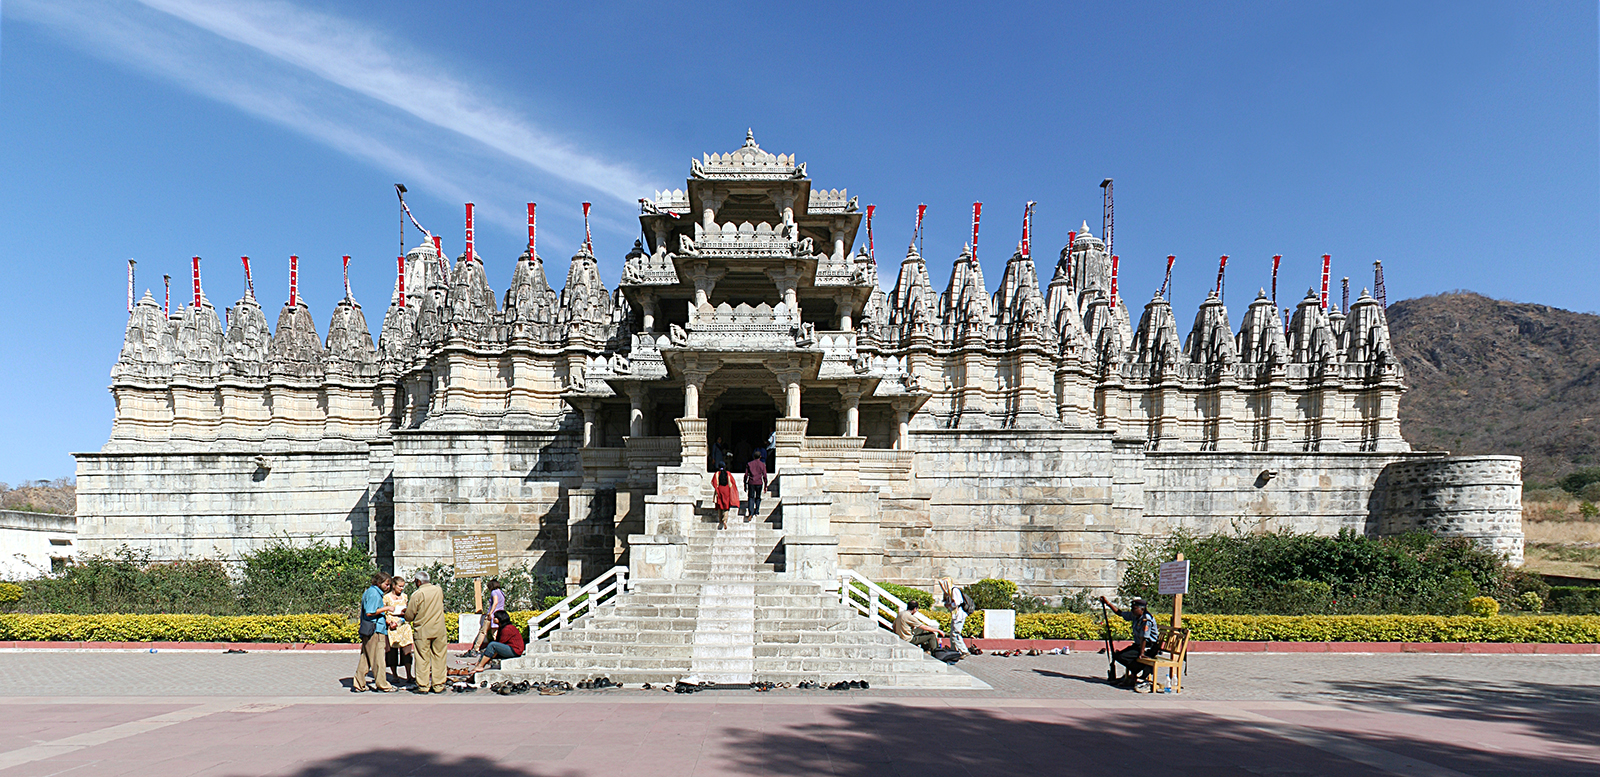 Ranakpur Jain temple in western India. Photo by Ingo Mehling/Wikipedia/Creative Commons